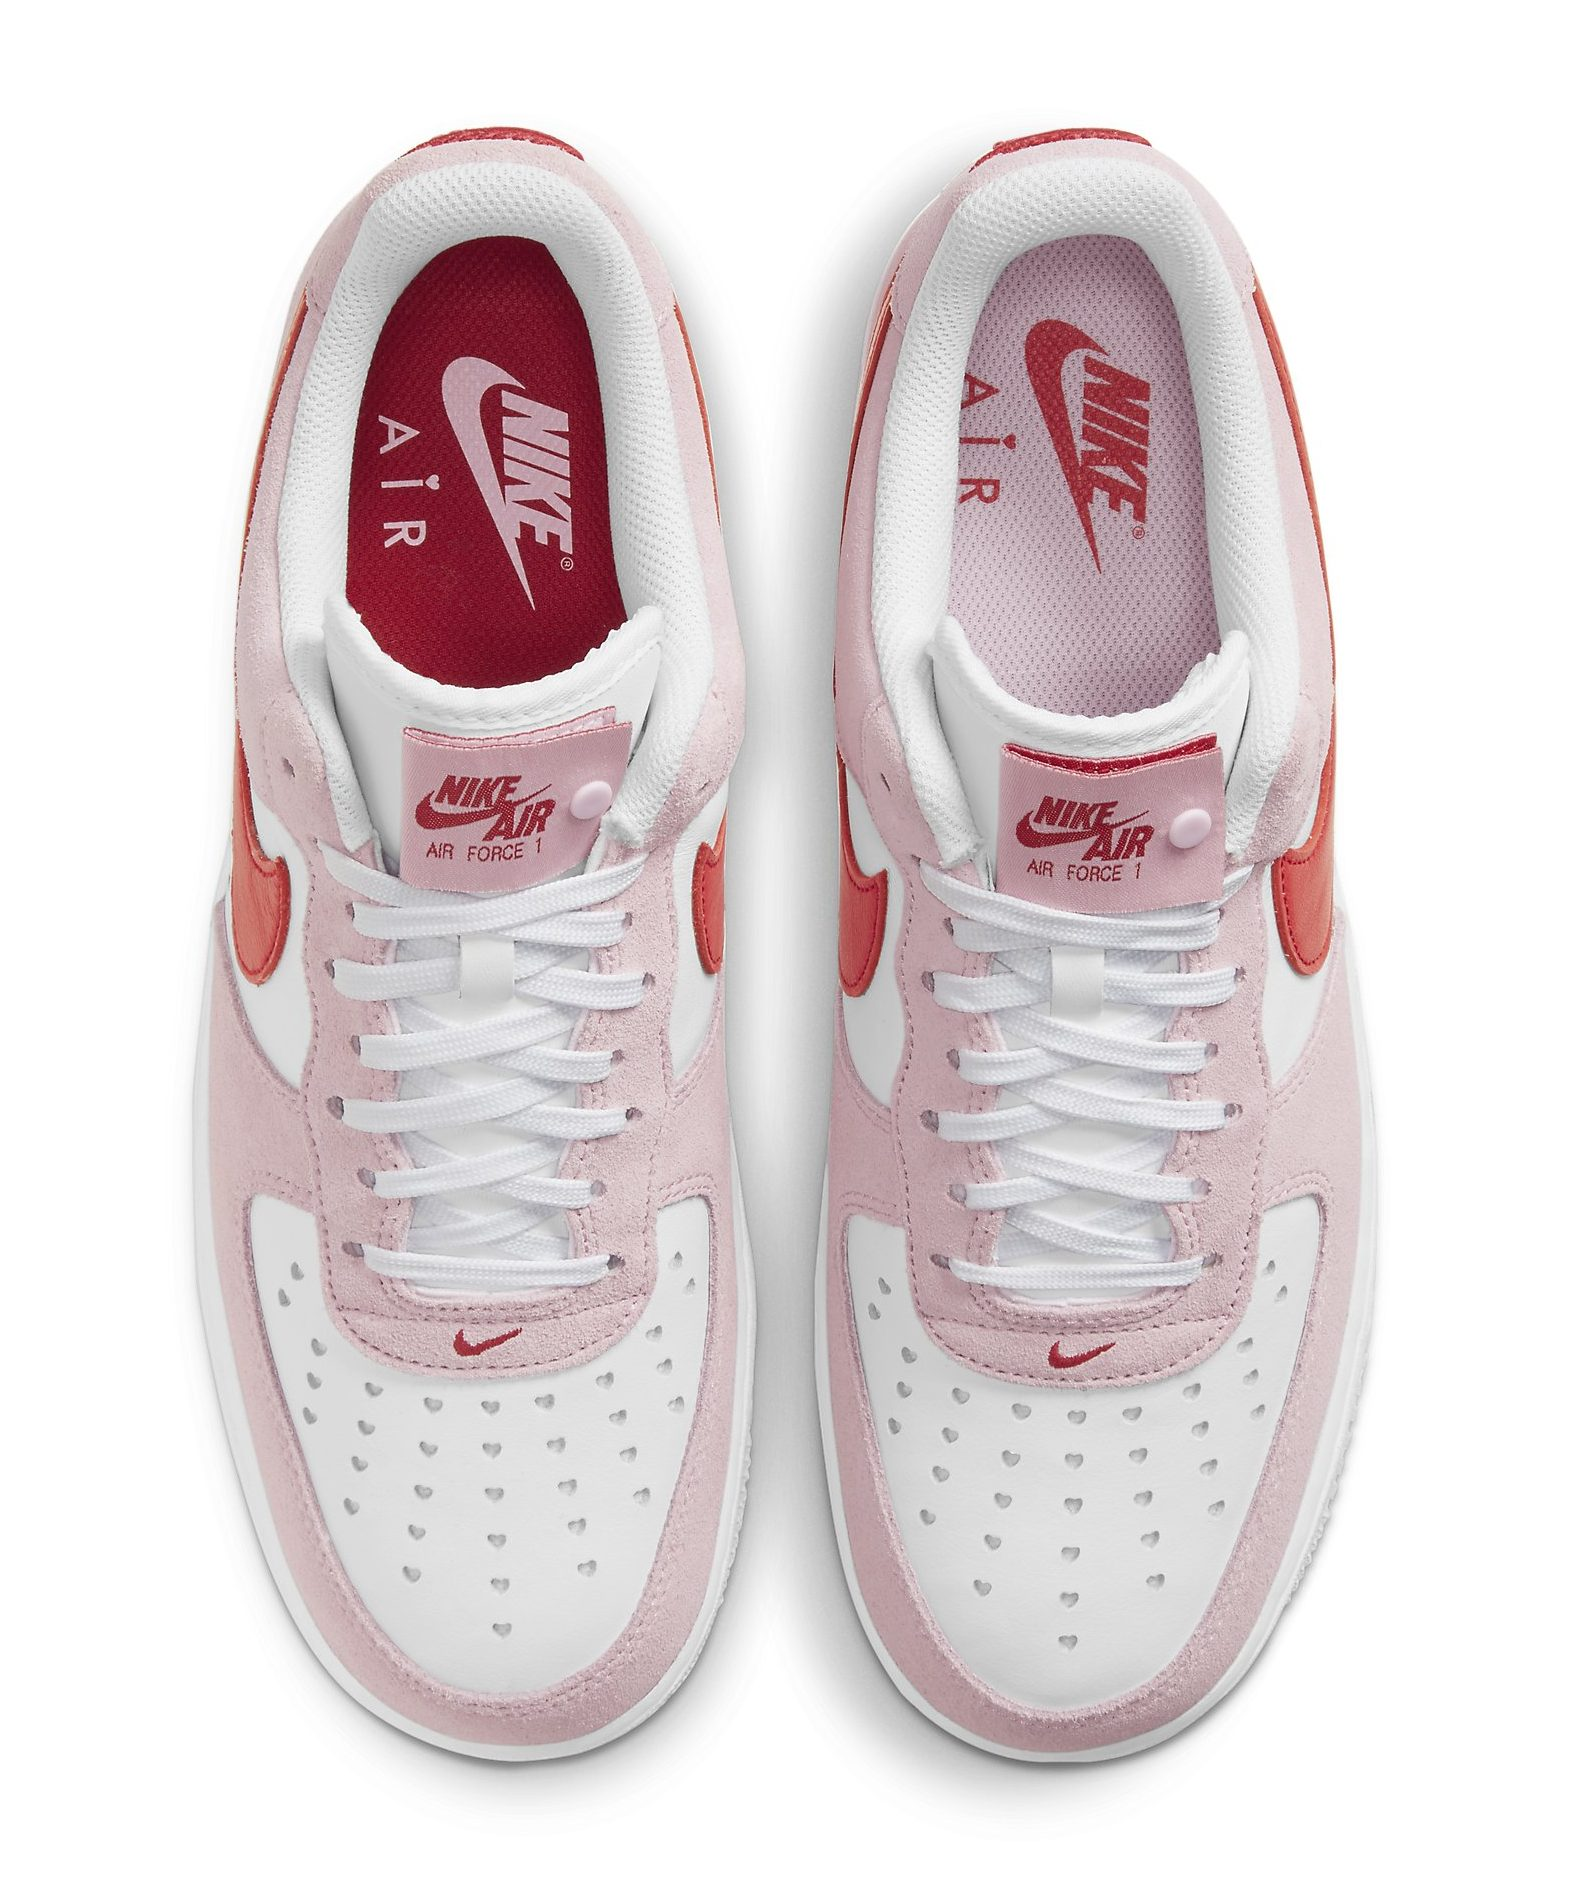 Nike Air Force 1 Low 'Love Letter' Release Info: How to Buy a Pair ...